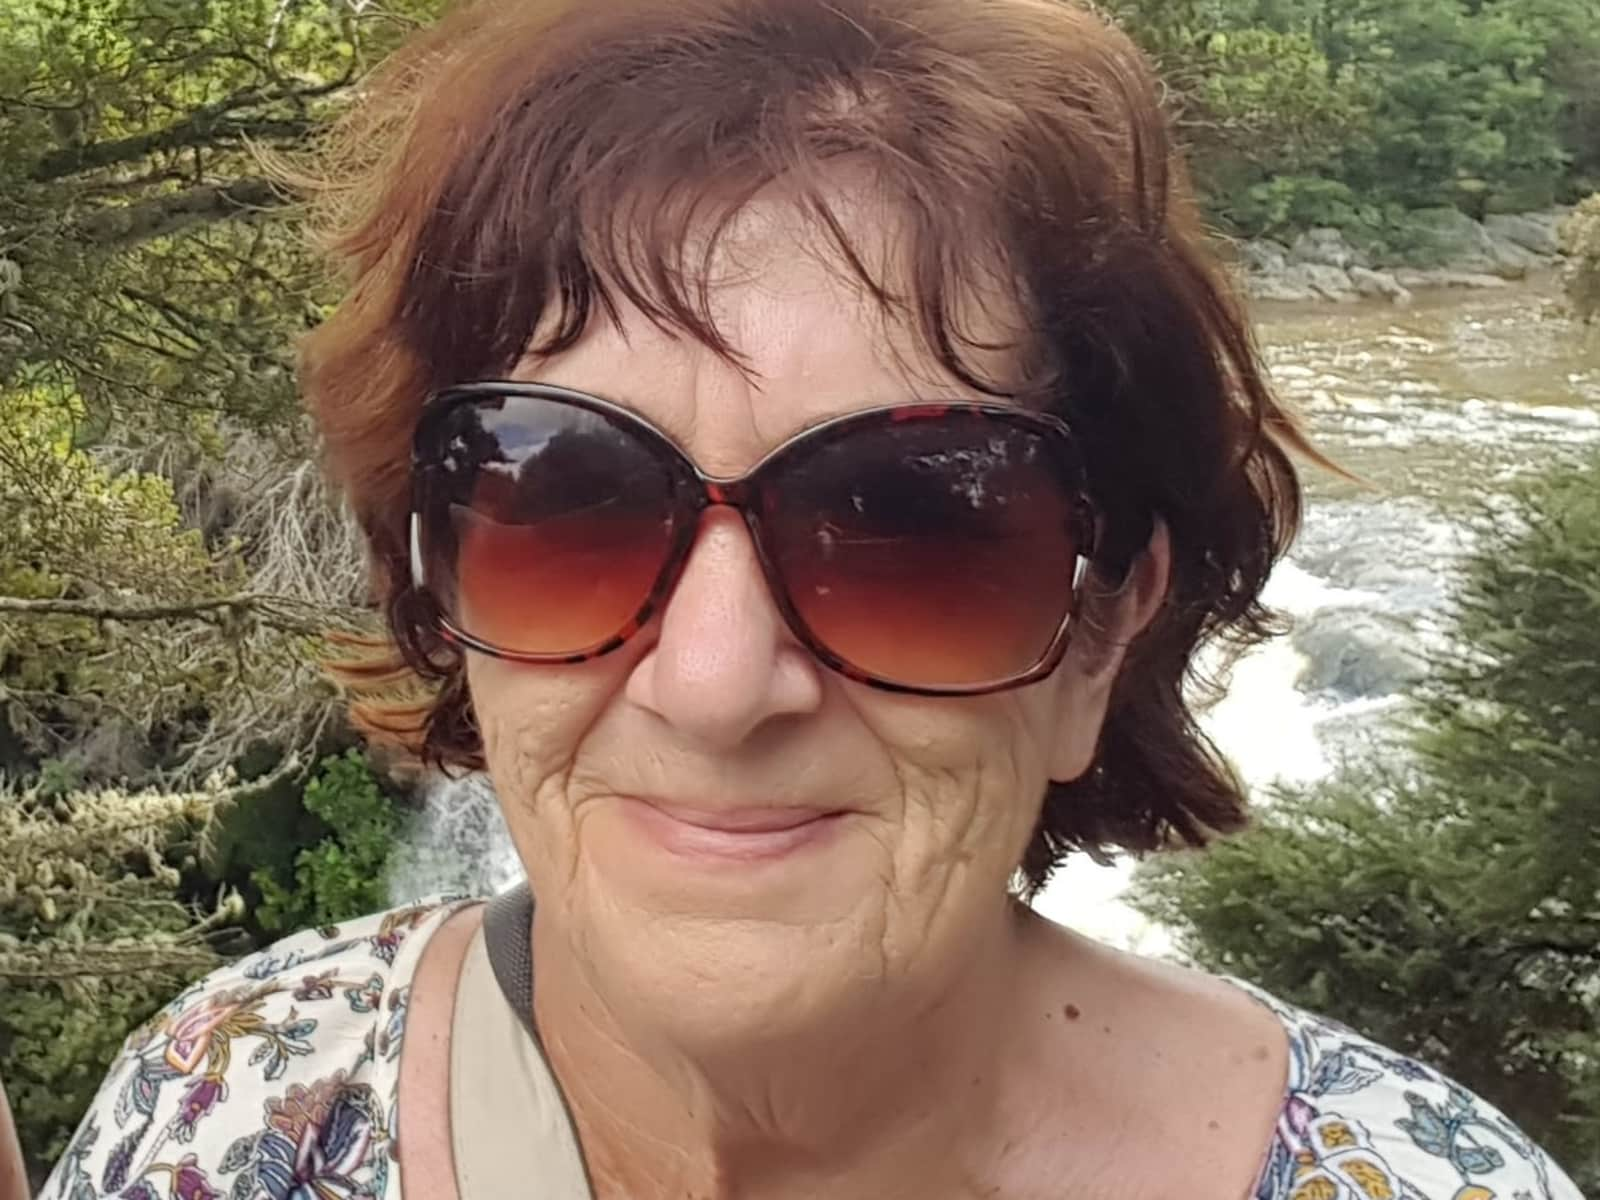 Marie from Taupo, New Zealand